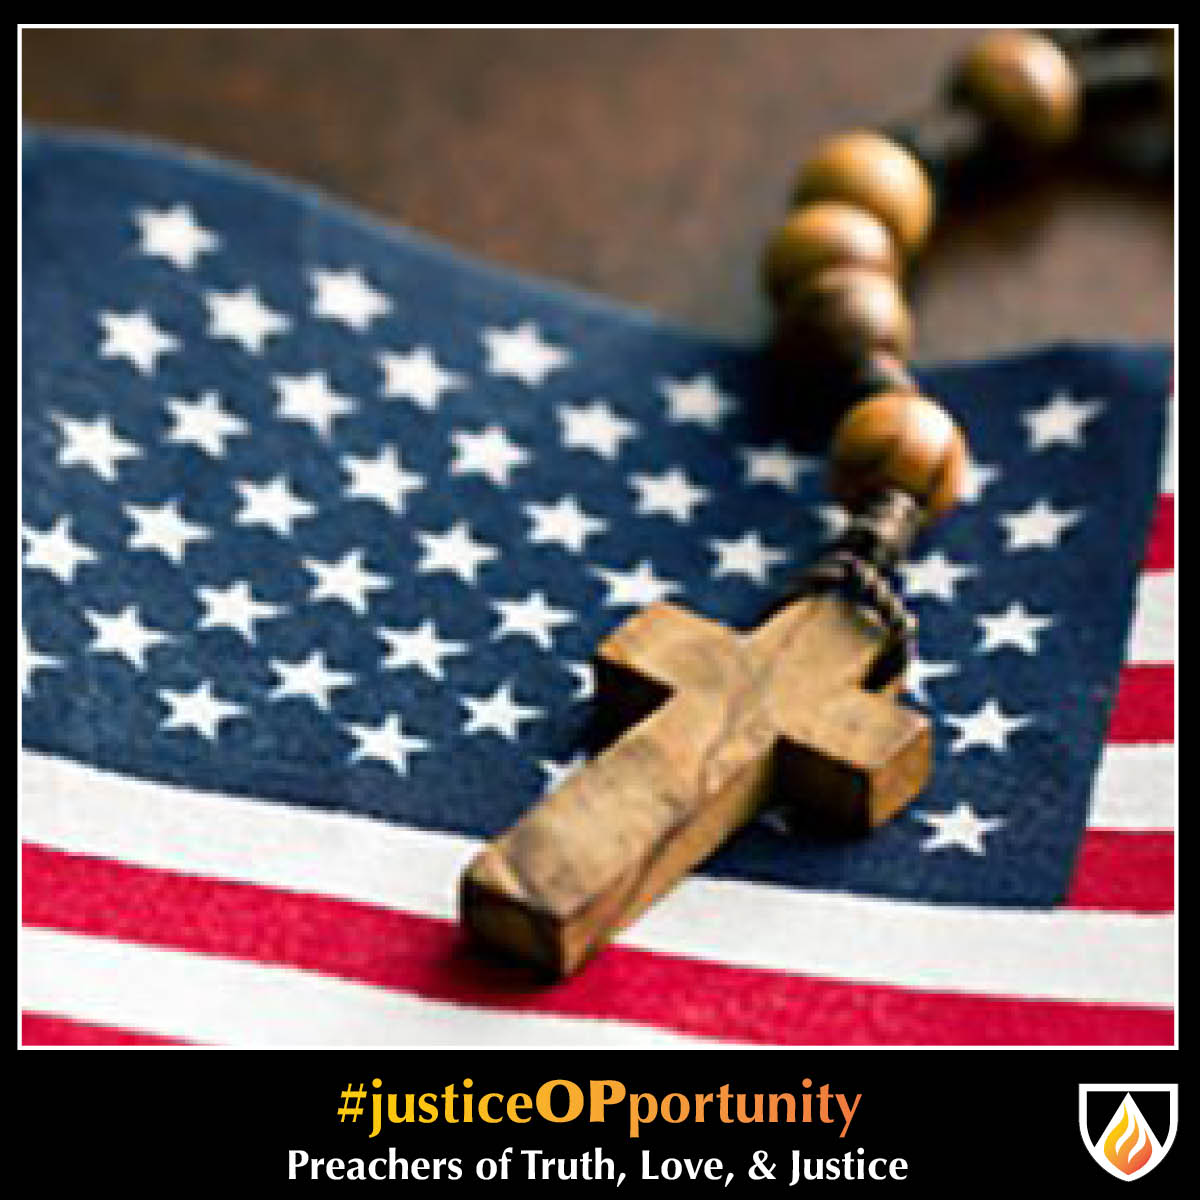 #justiceOPportunity Thursday: February 20, 2020